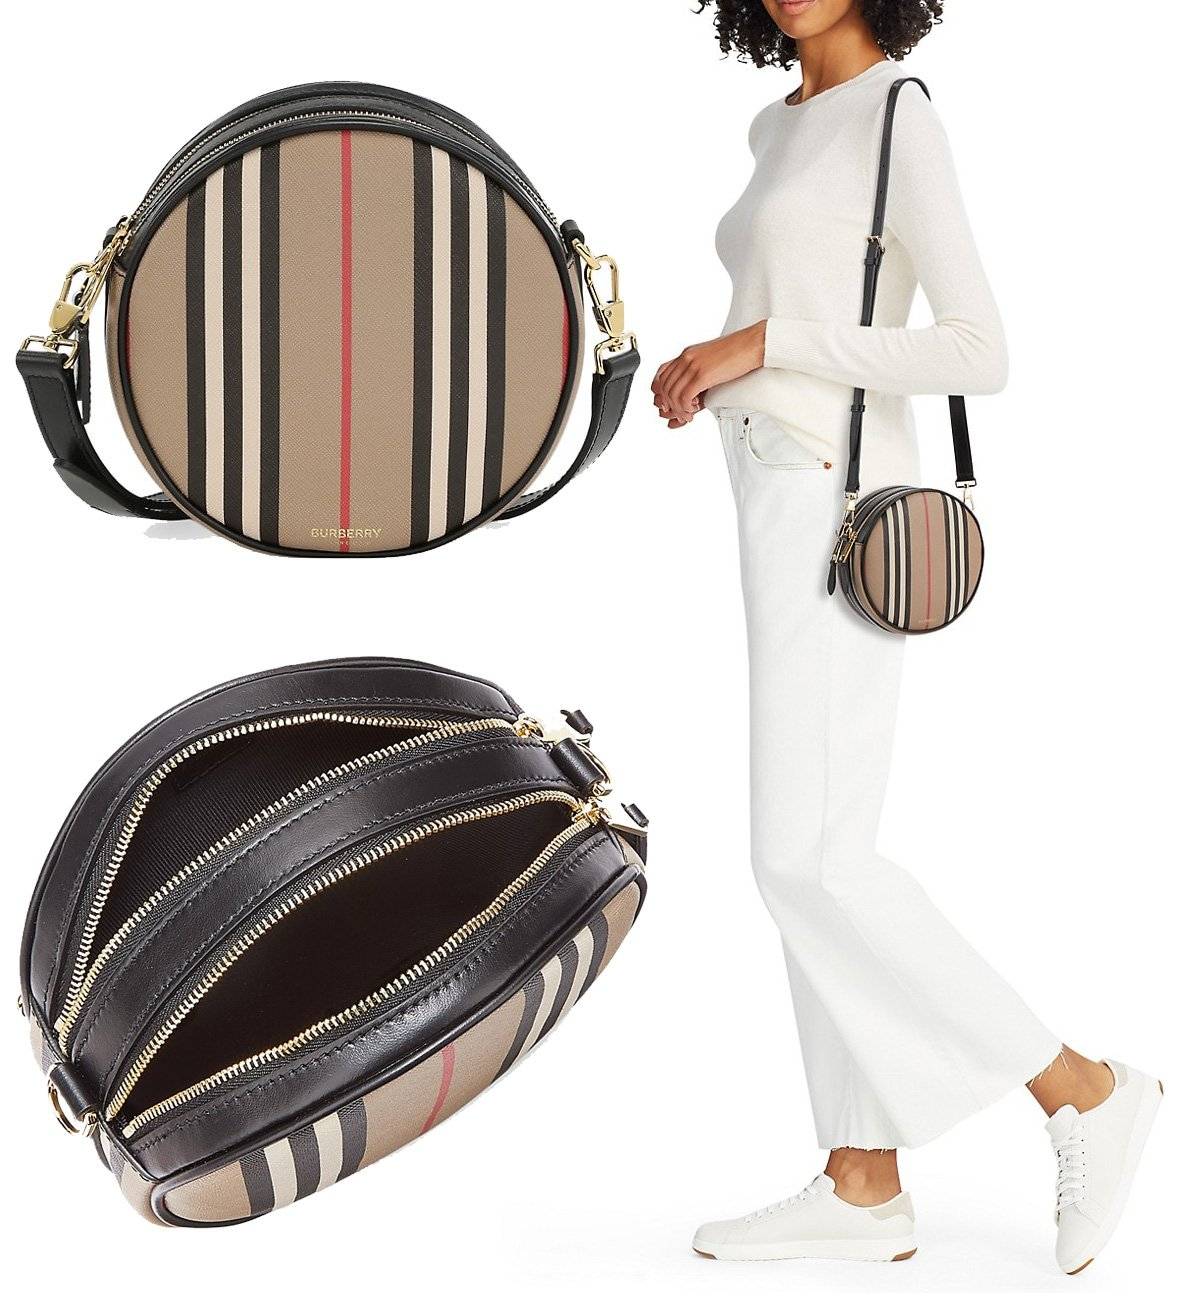 A circular purse that has Burberry's signature stripe and an adjustable convertible strap that can be worn across the body or around the waist